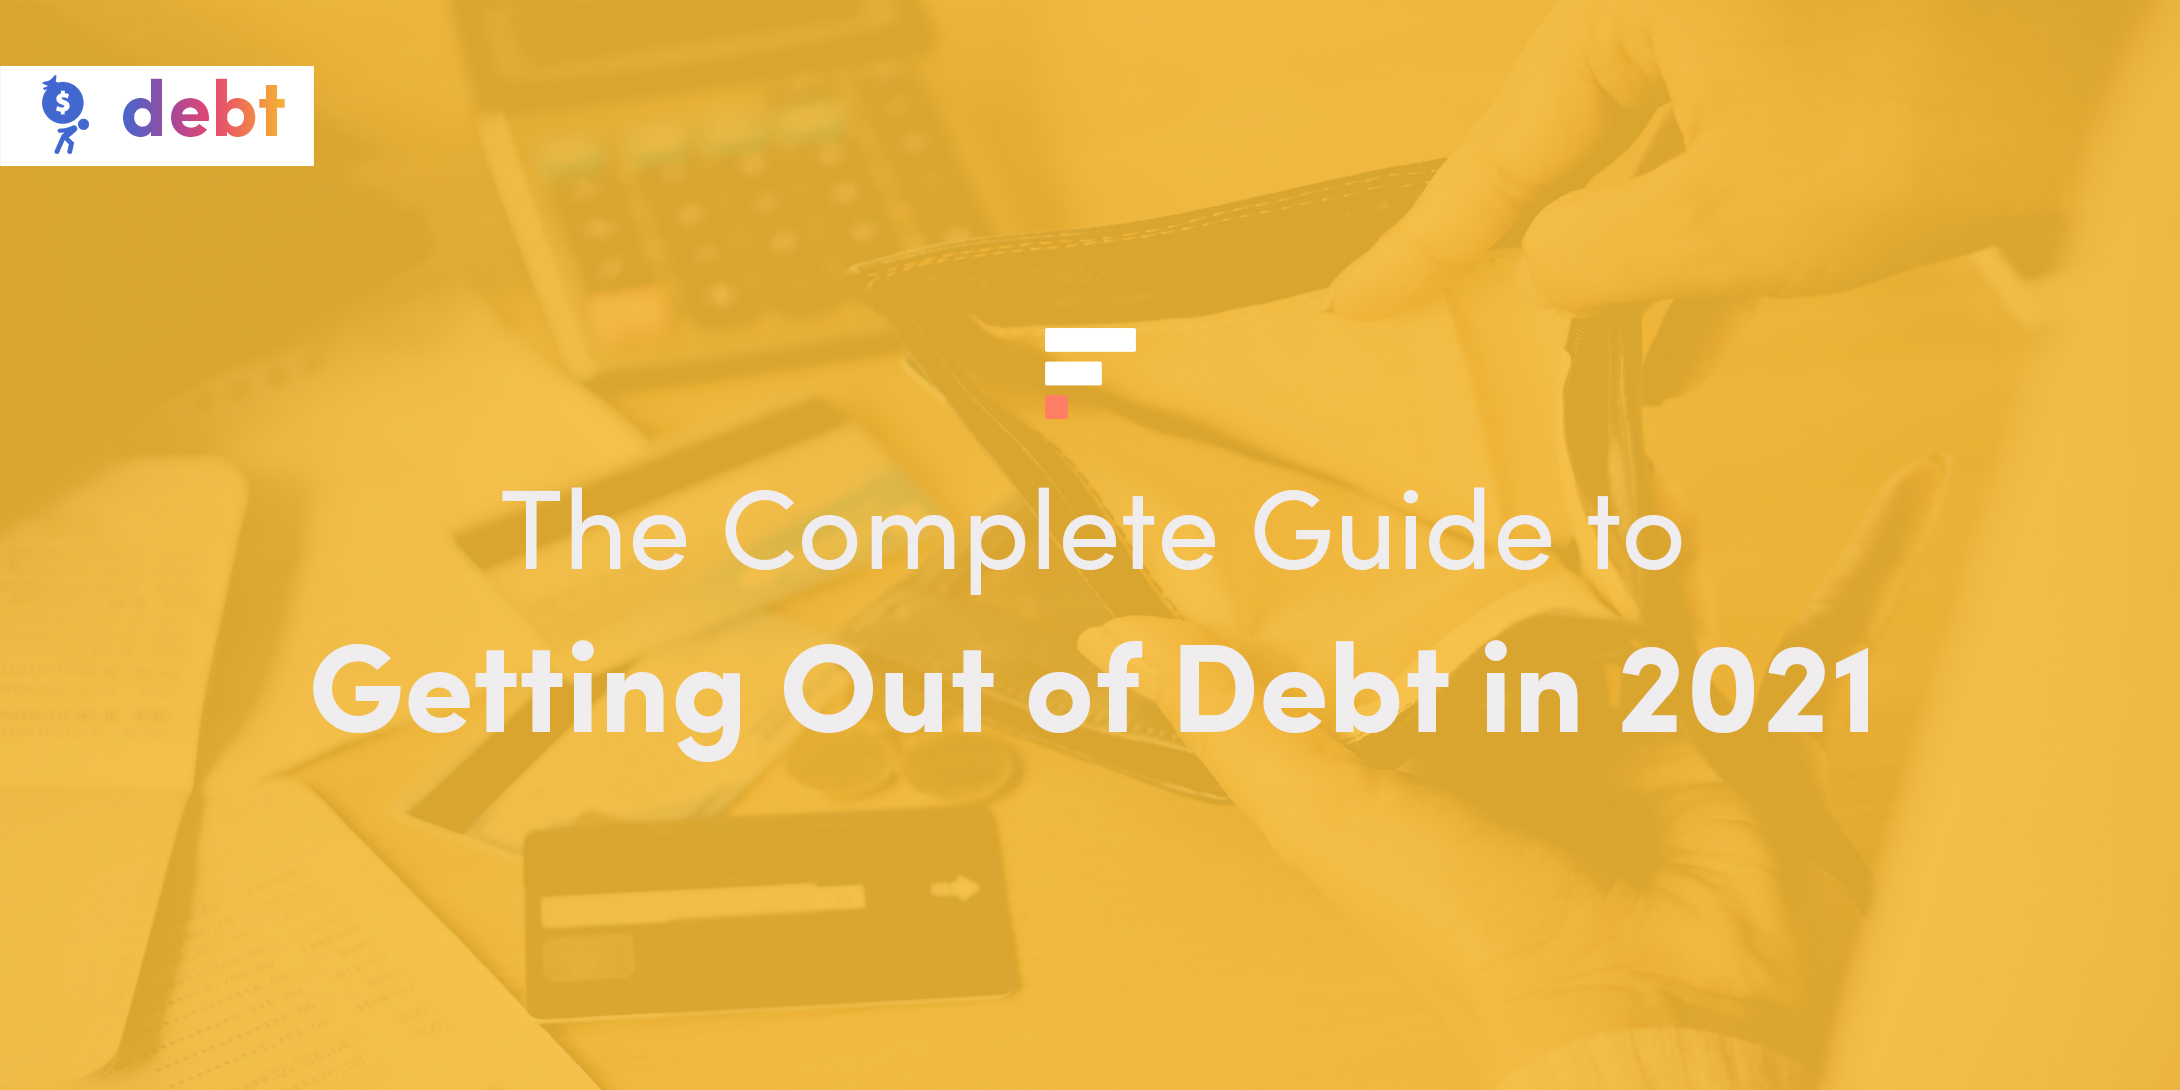 The complete guide to getting out of debt